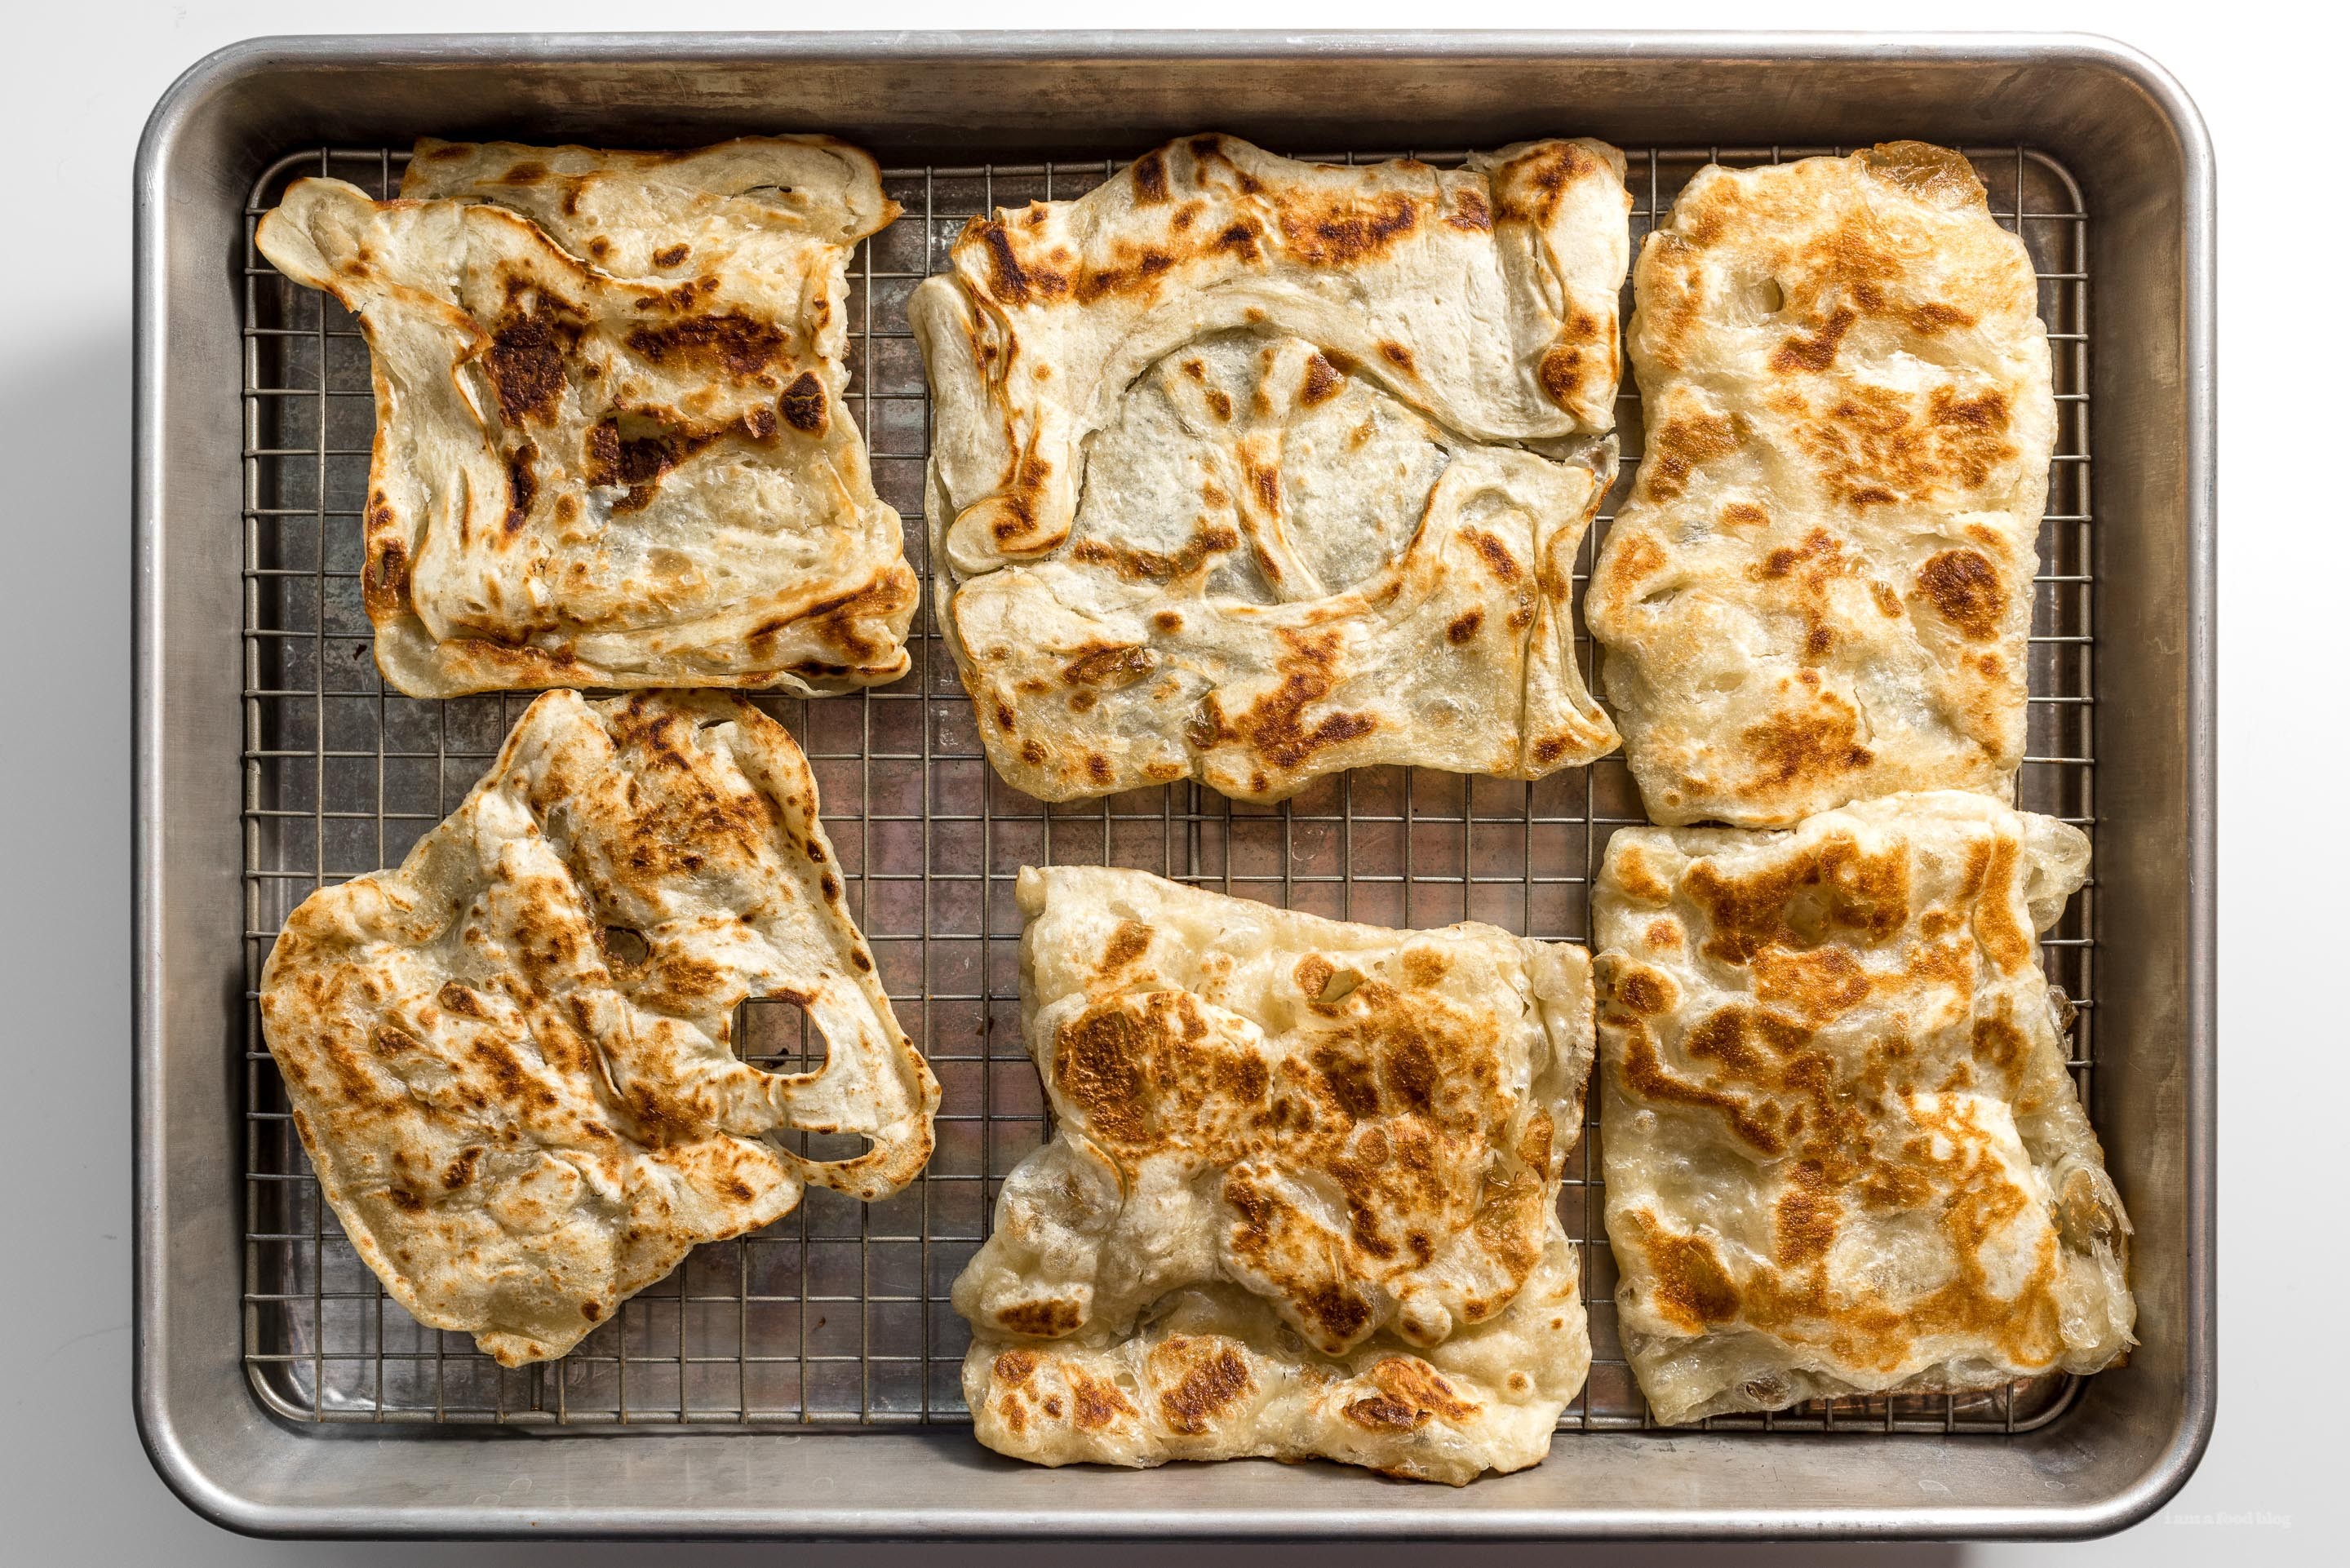 Malaysian flatbread roti canai recipe i am a food blog i am a have you ever had roti canai its flaky crispy and ugh so good i eat it on its own or with a bit of curry sauce and im in heaven forumfinder Image collections